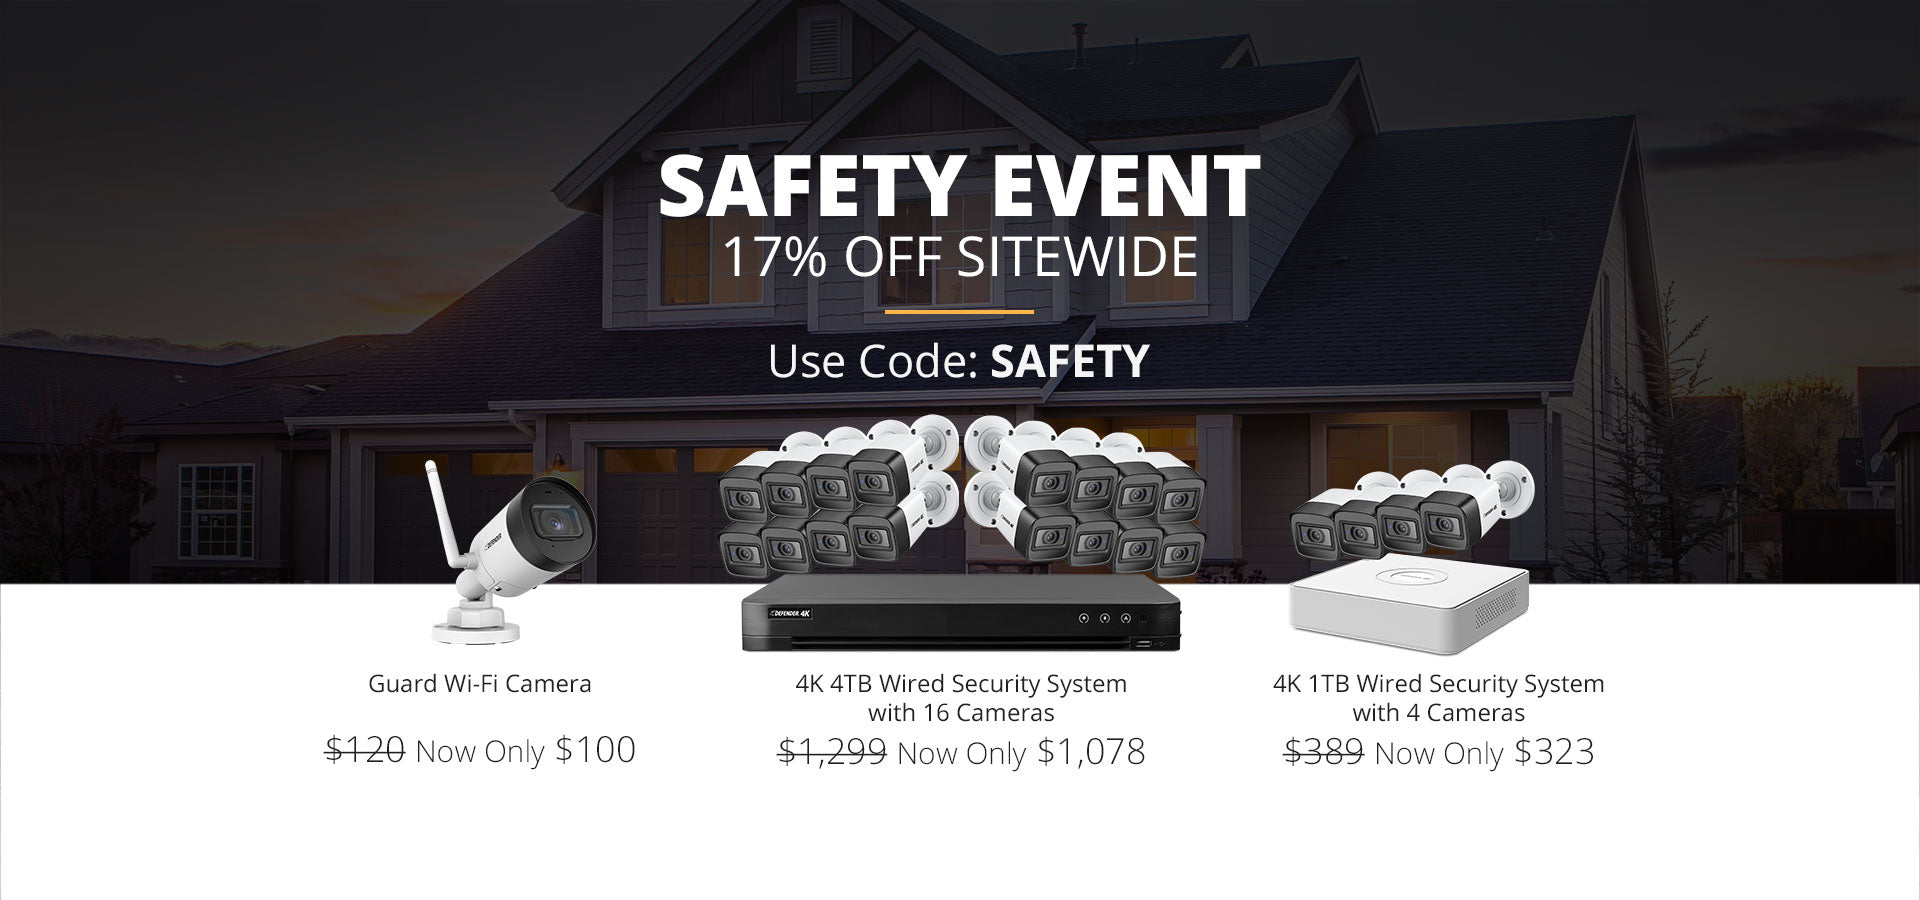 Safety Event